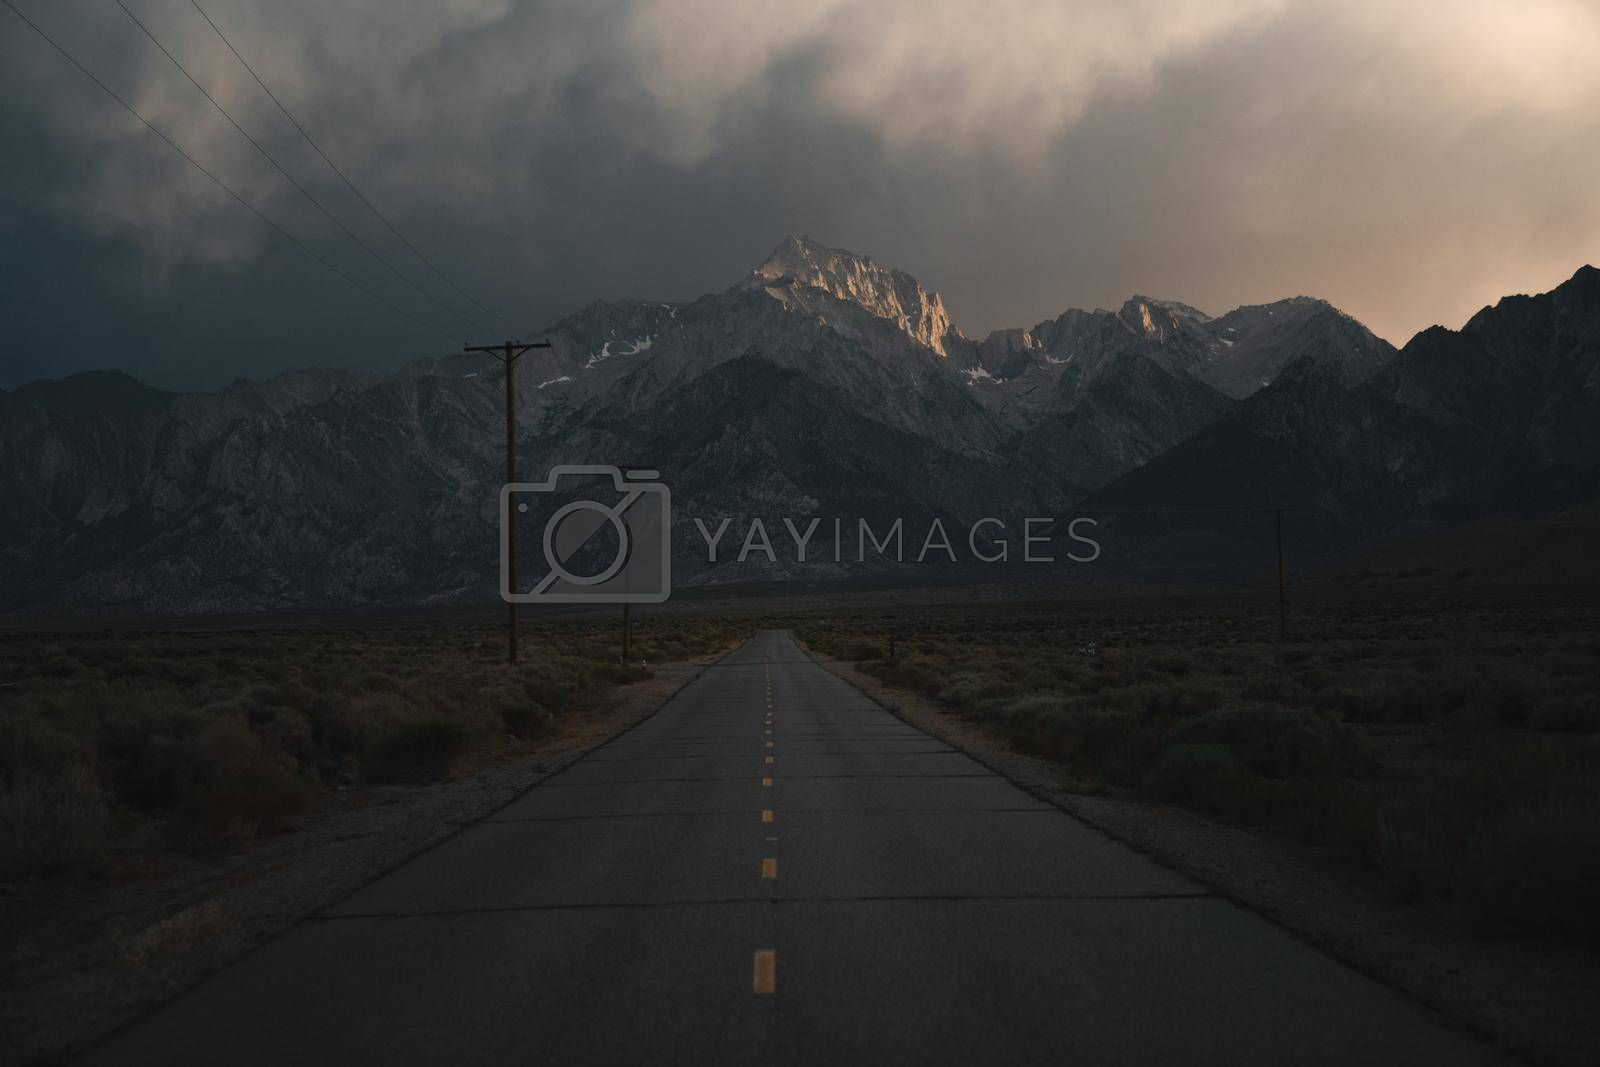 A dark, stormy road leading into the mountains.